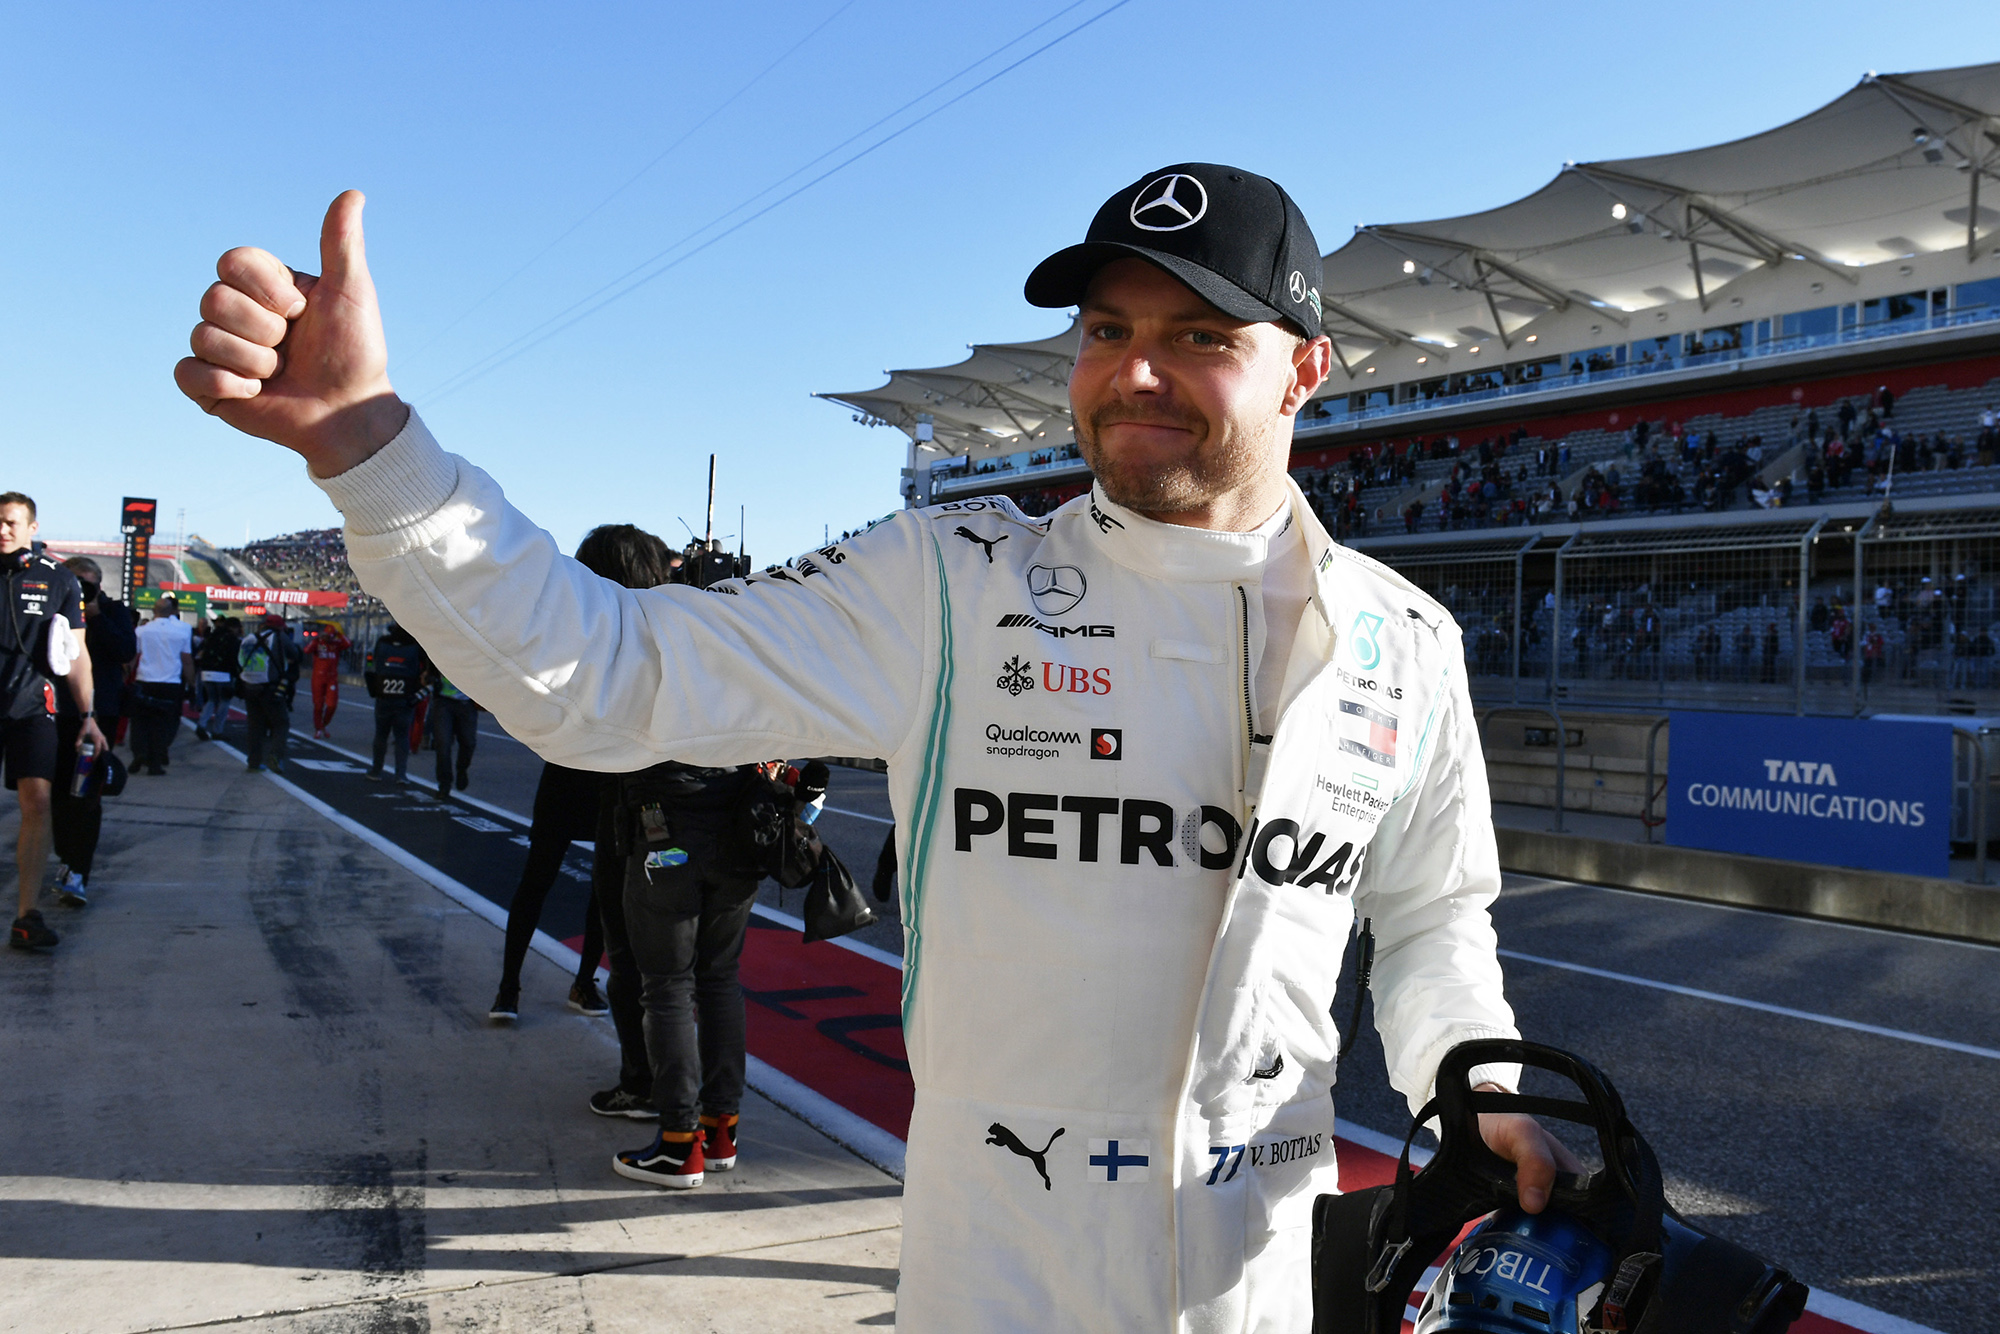 Uphill battle for Hamilton to claim title with a win: 2019 US Grand Prix qualifying